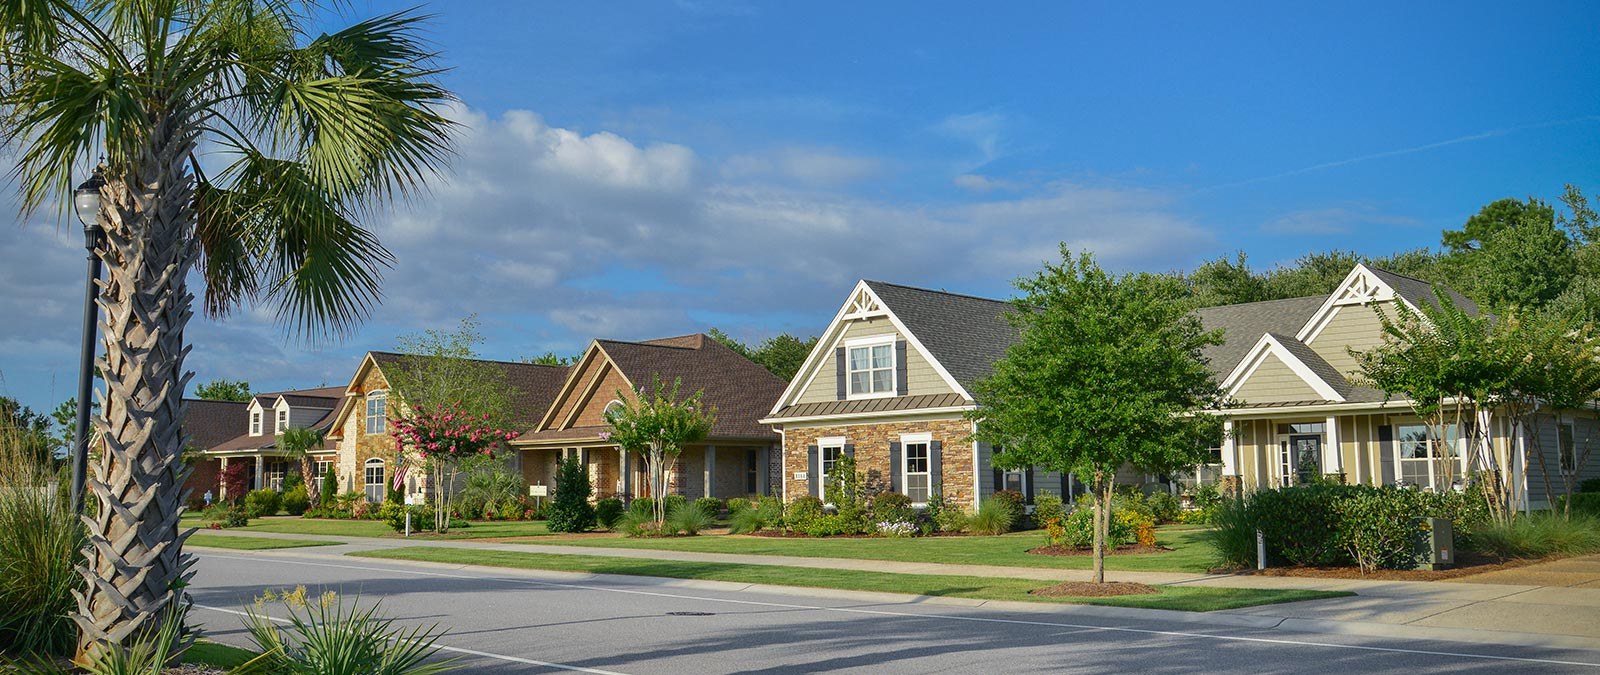 Patio Homes In Compass Pointe, NC